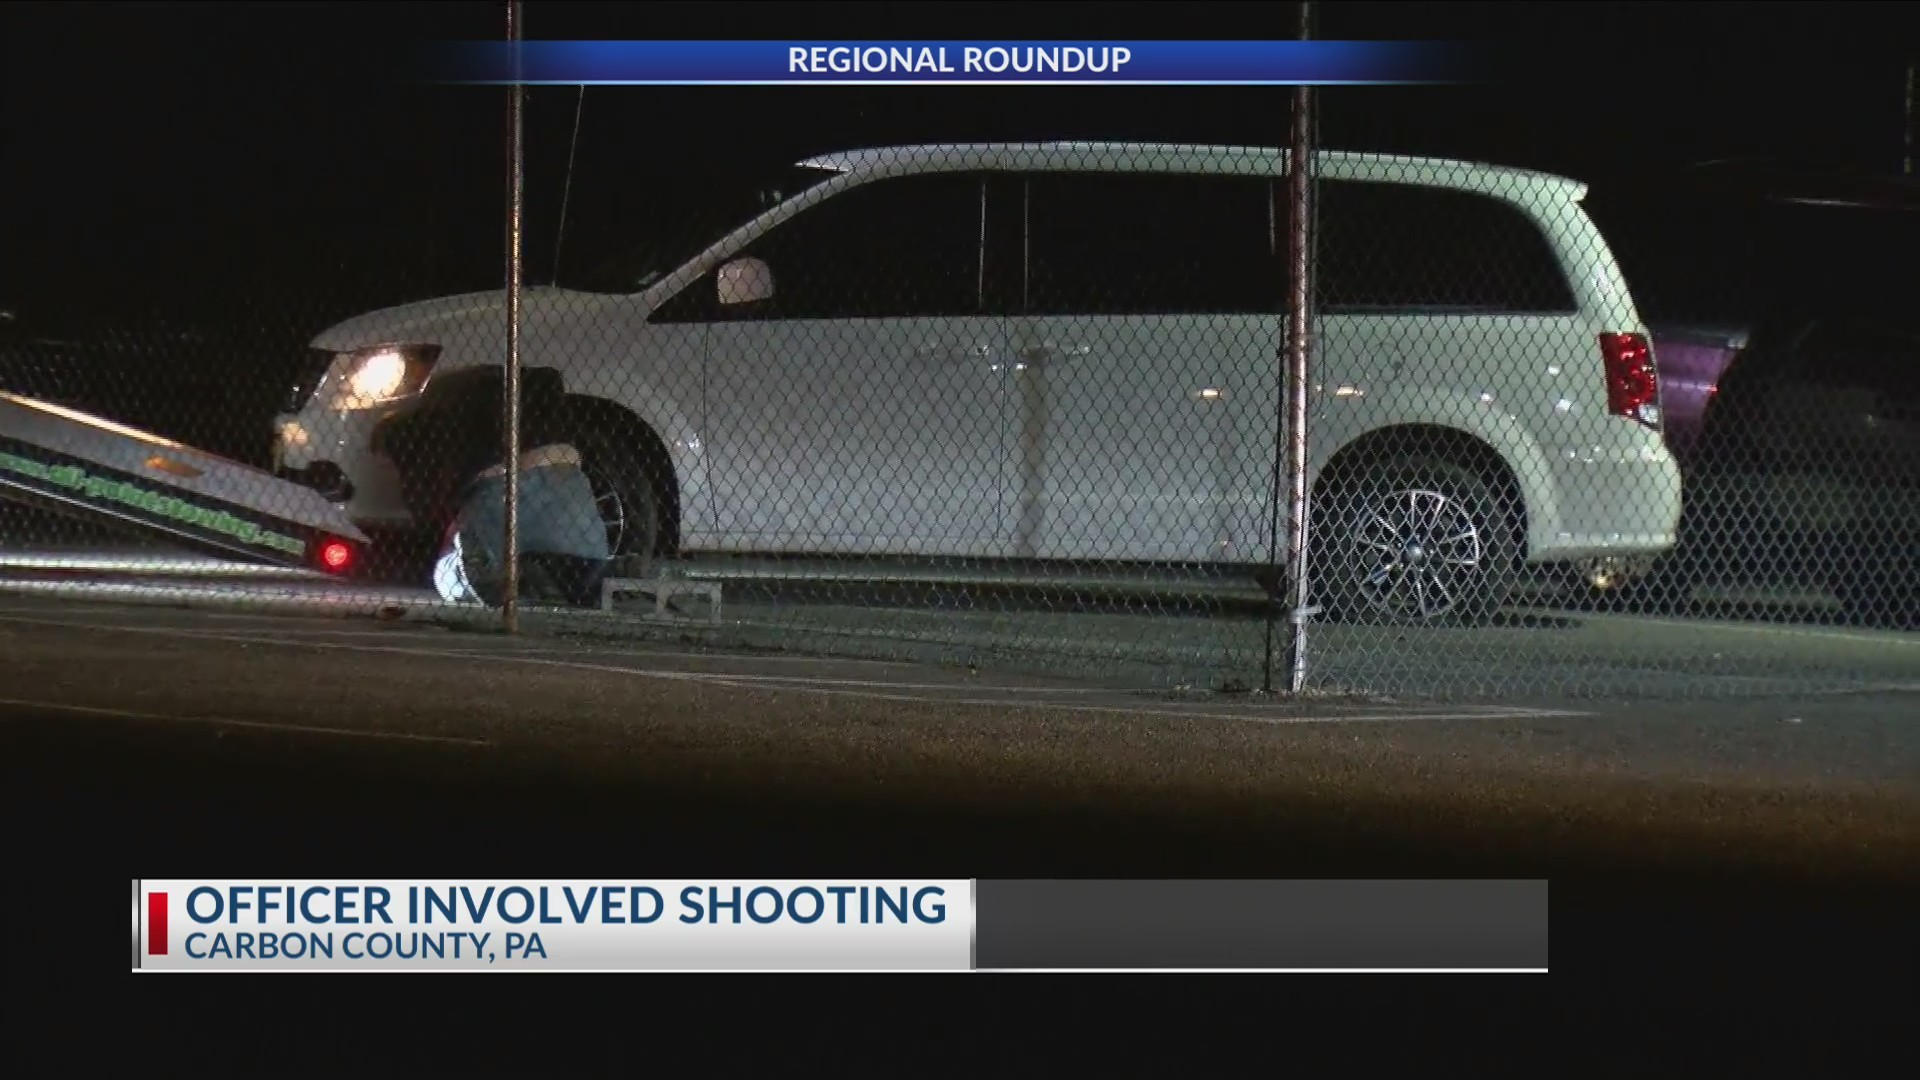 Fatal officer-involved shooting ruled accidental